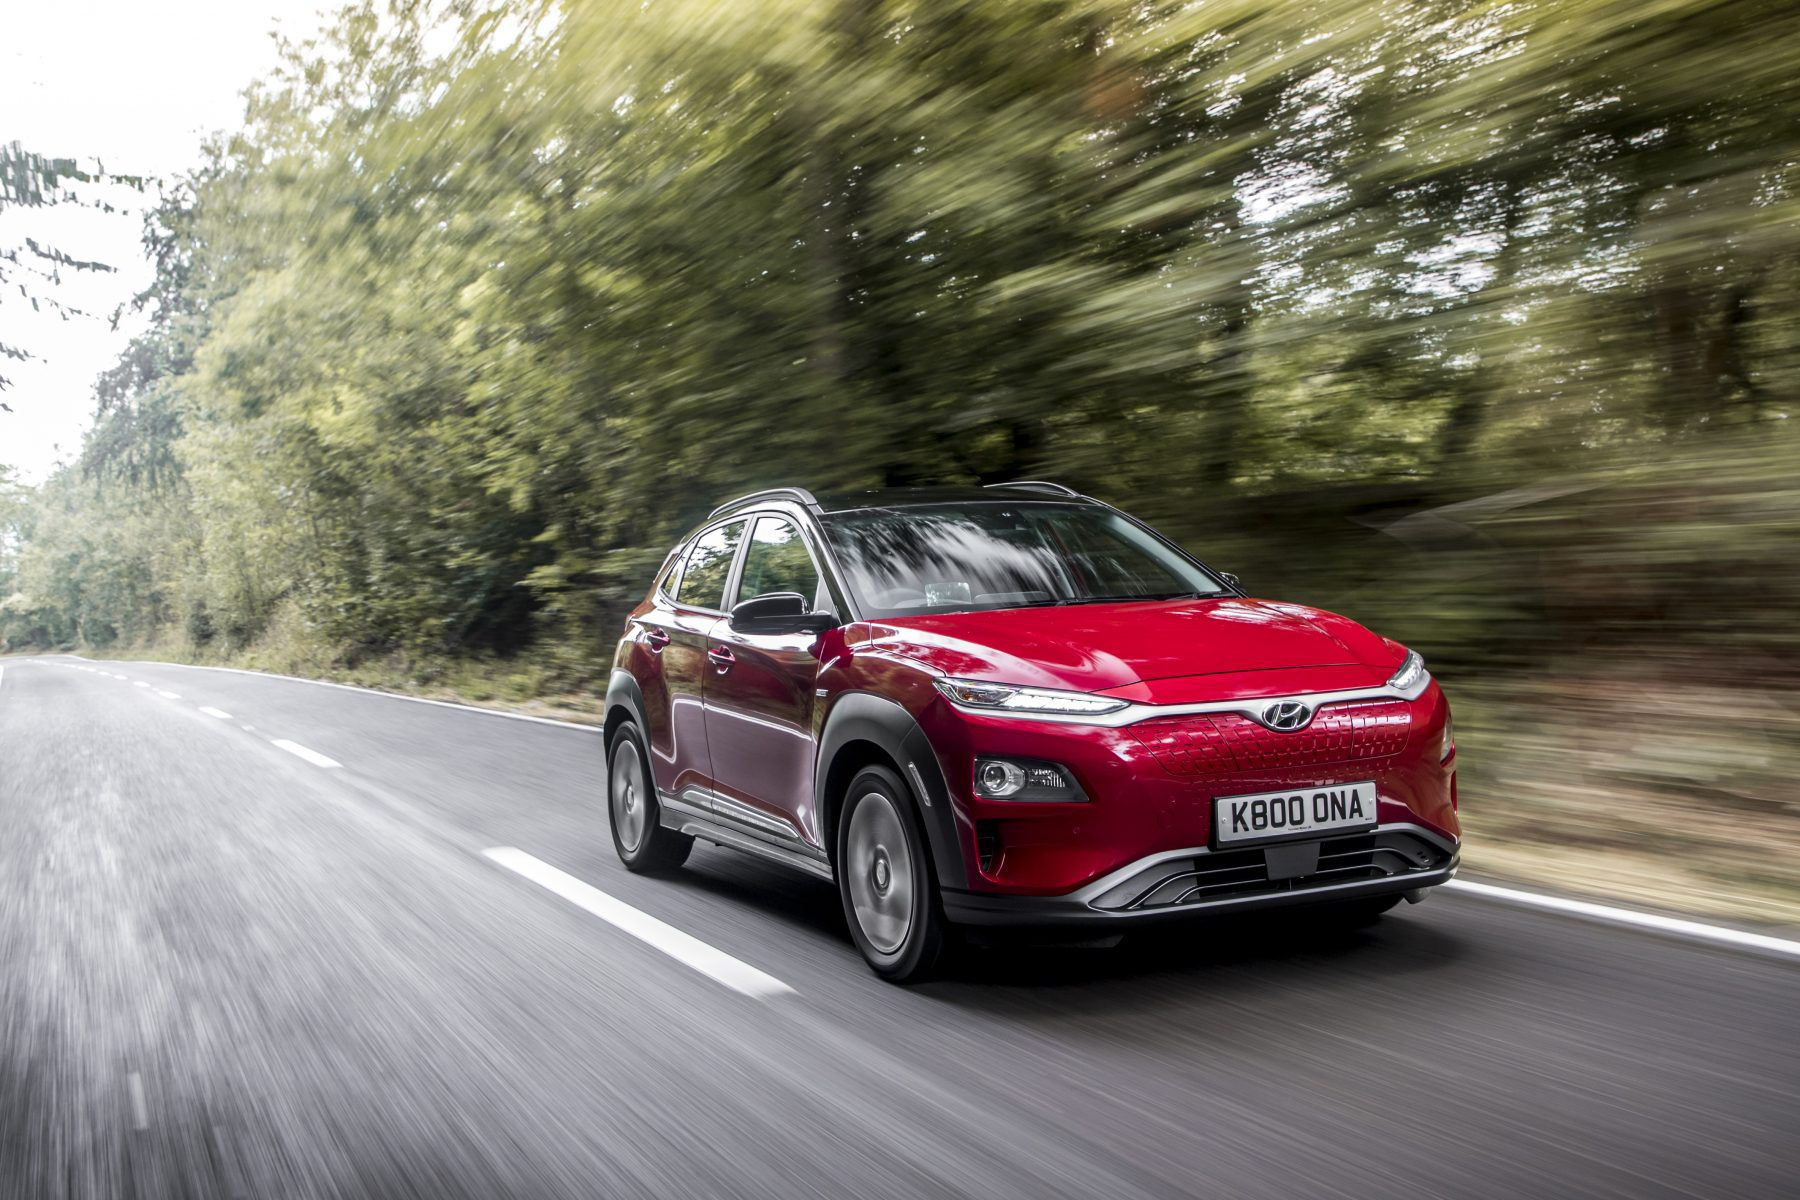 Red Hyundai Konda Electric driving on a road